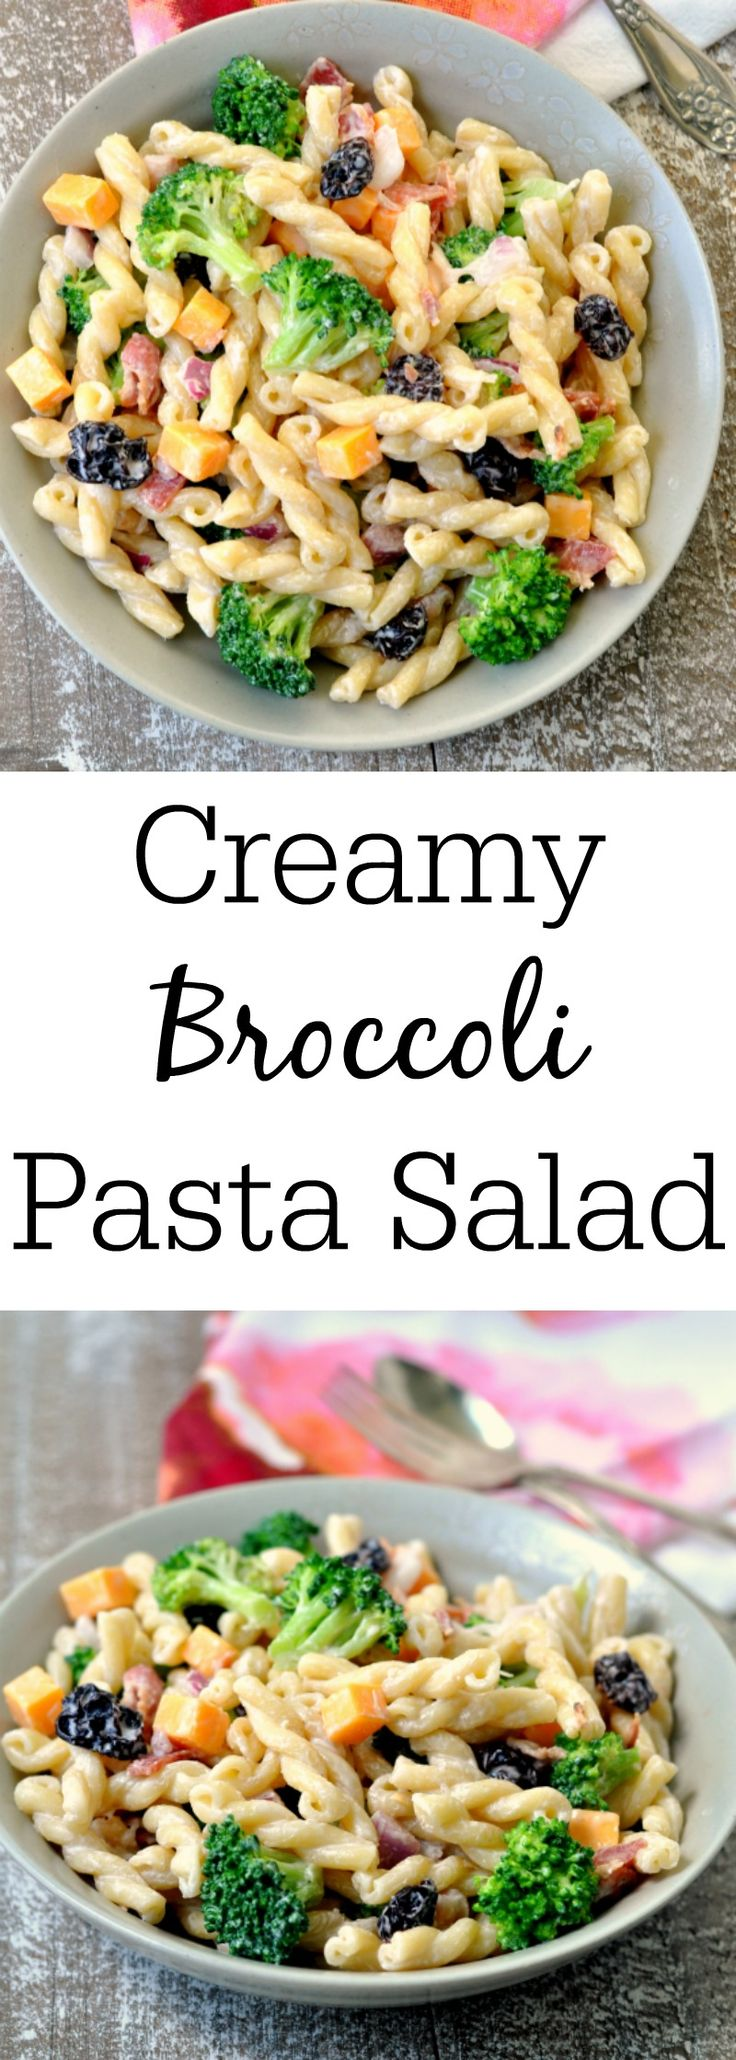 Creamy Broccoli Pasta Salad (need to try this one dairy-free!)